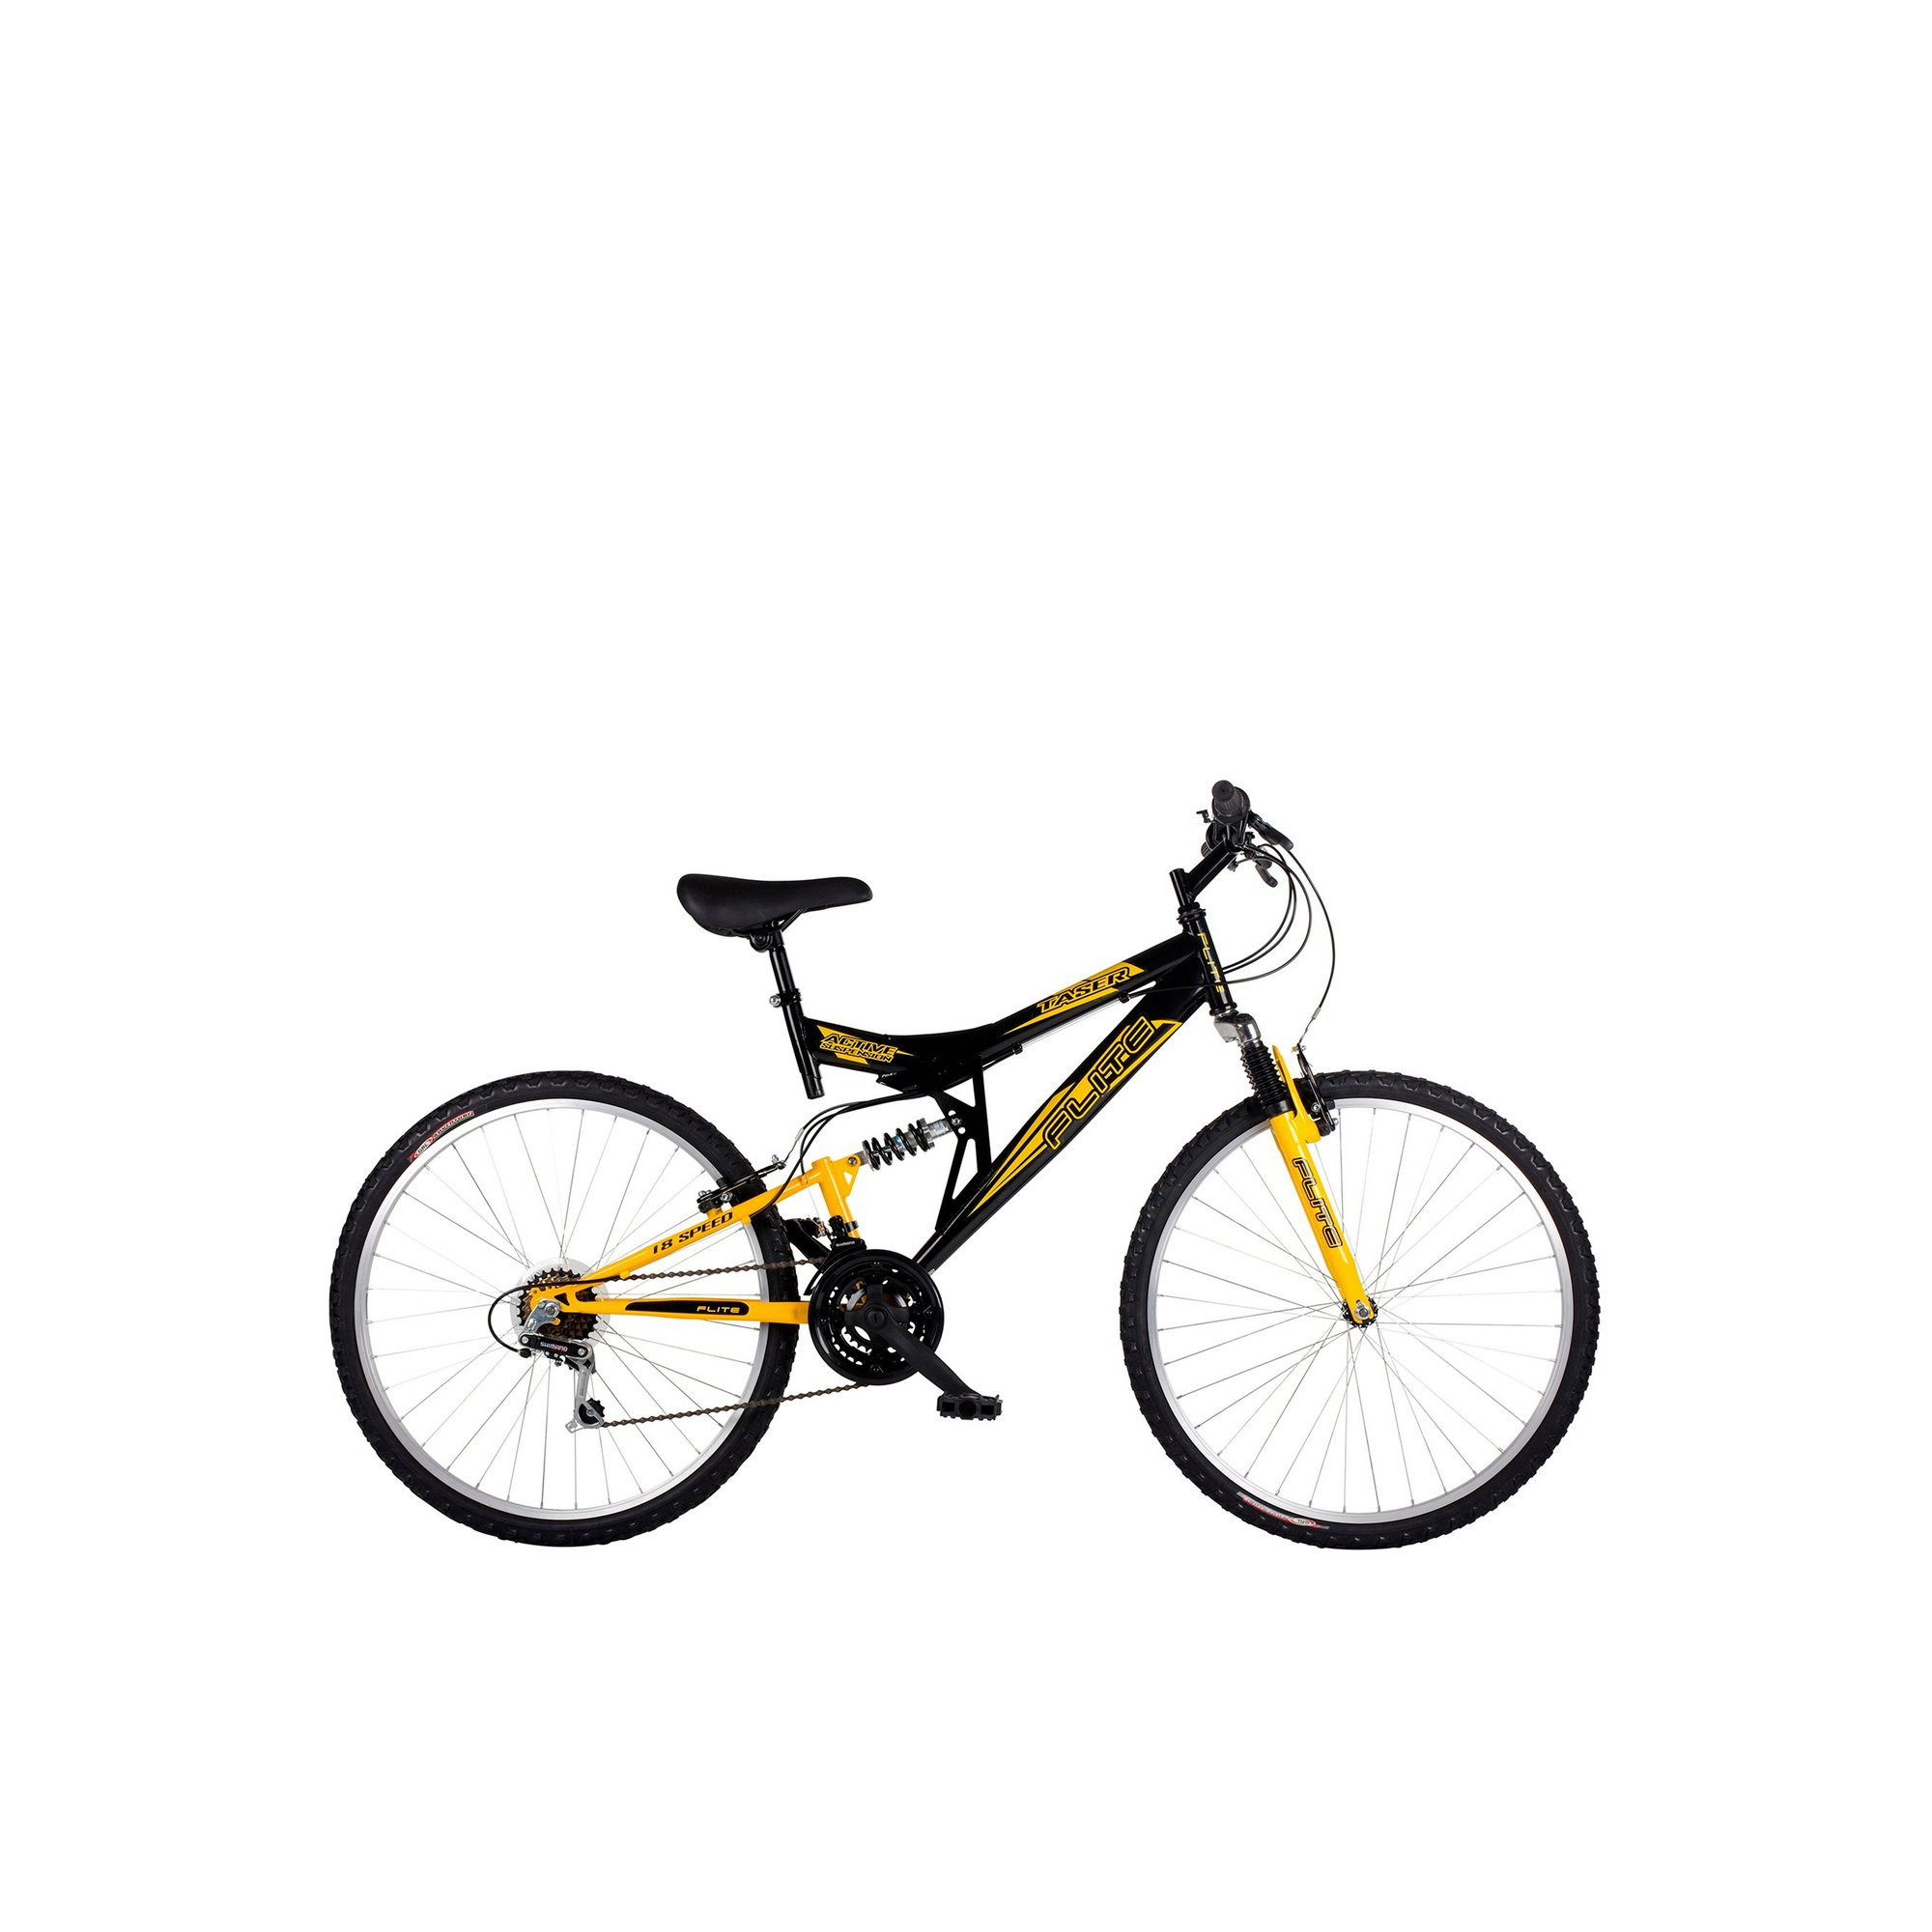 Image of Flite Taser 2 Mens MTB 18 Inch Bike